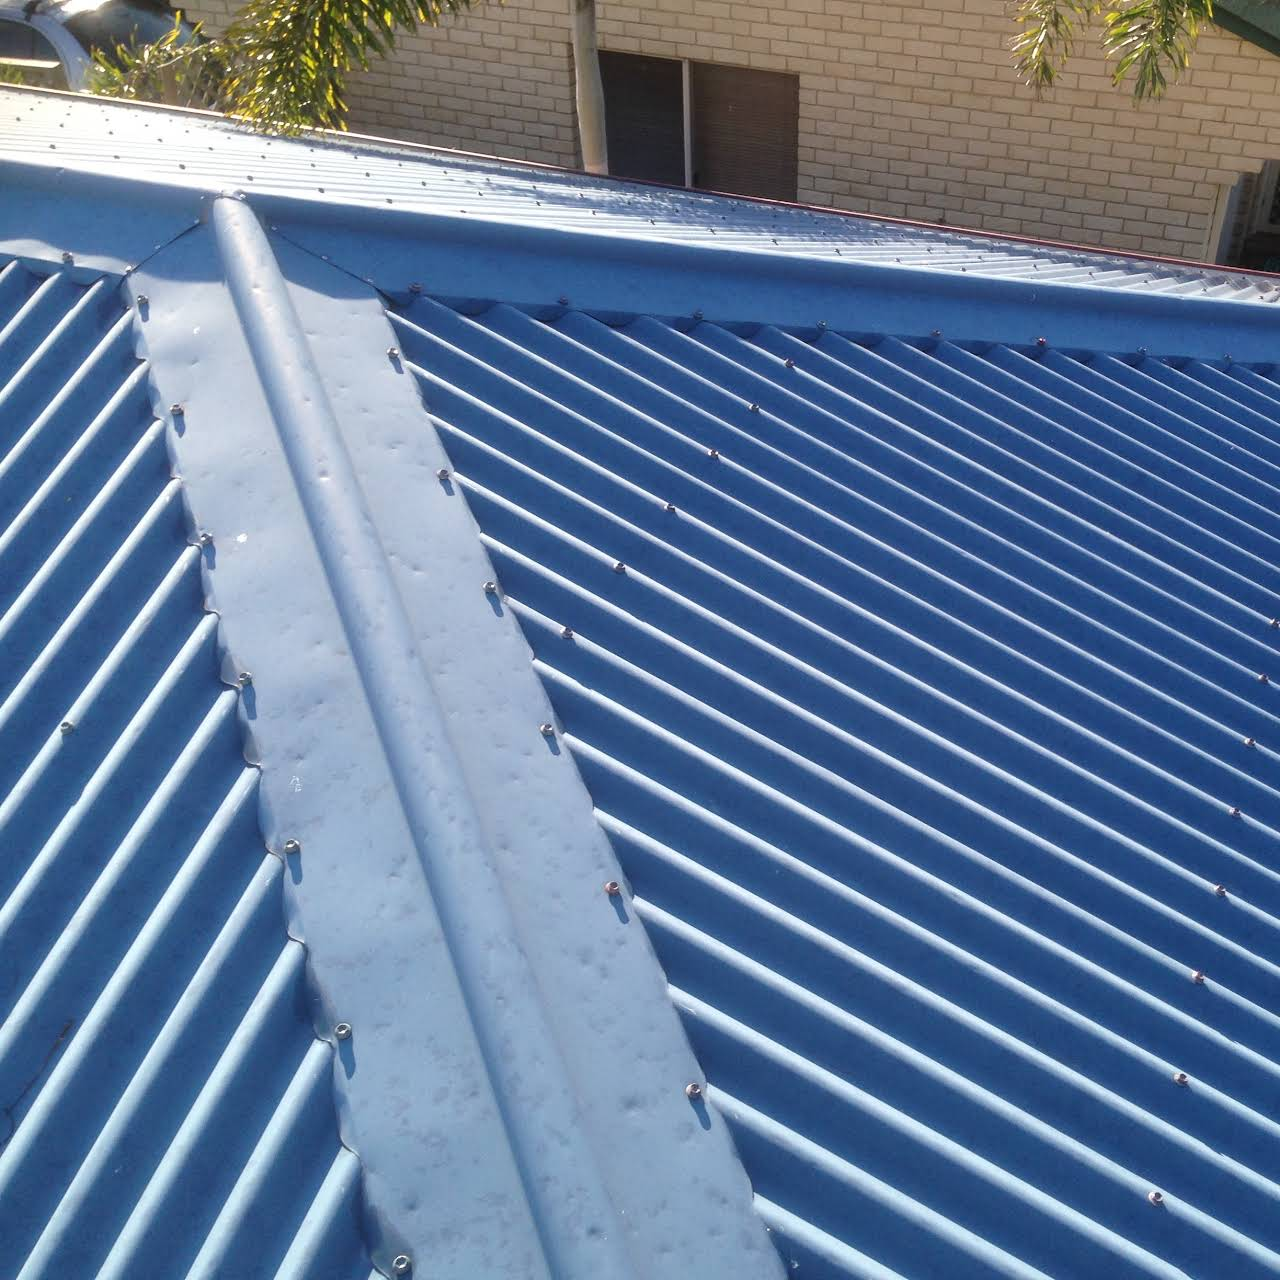 Hervey Bay Roofing And Gutter Top Quality Roofing Services New Roofing Roof Repairs Contractor In Scarness Wide Bay